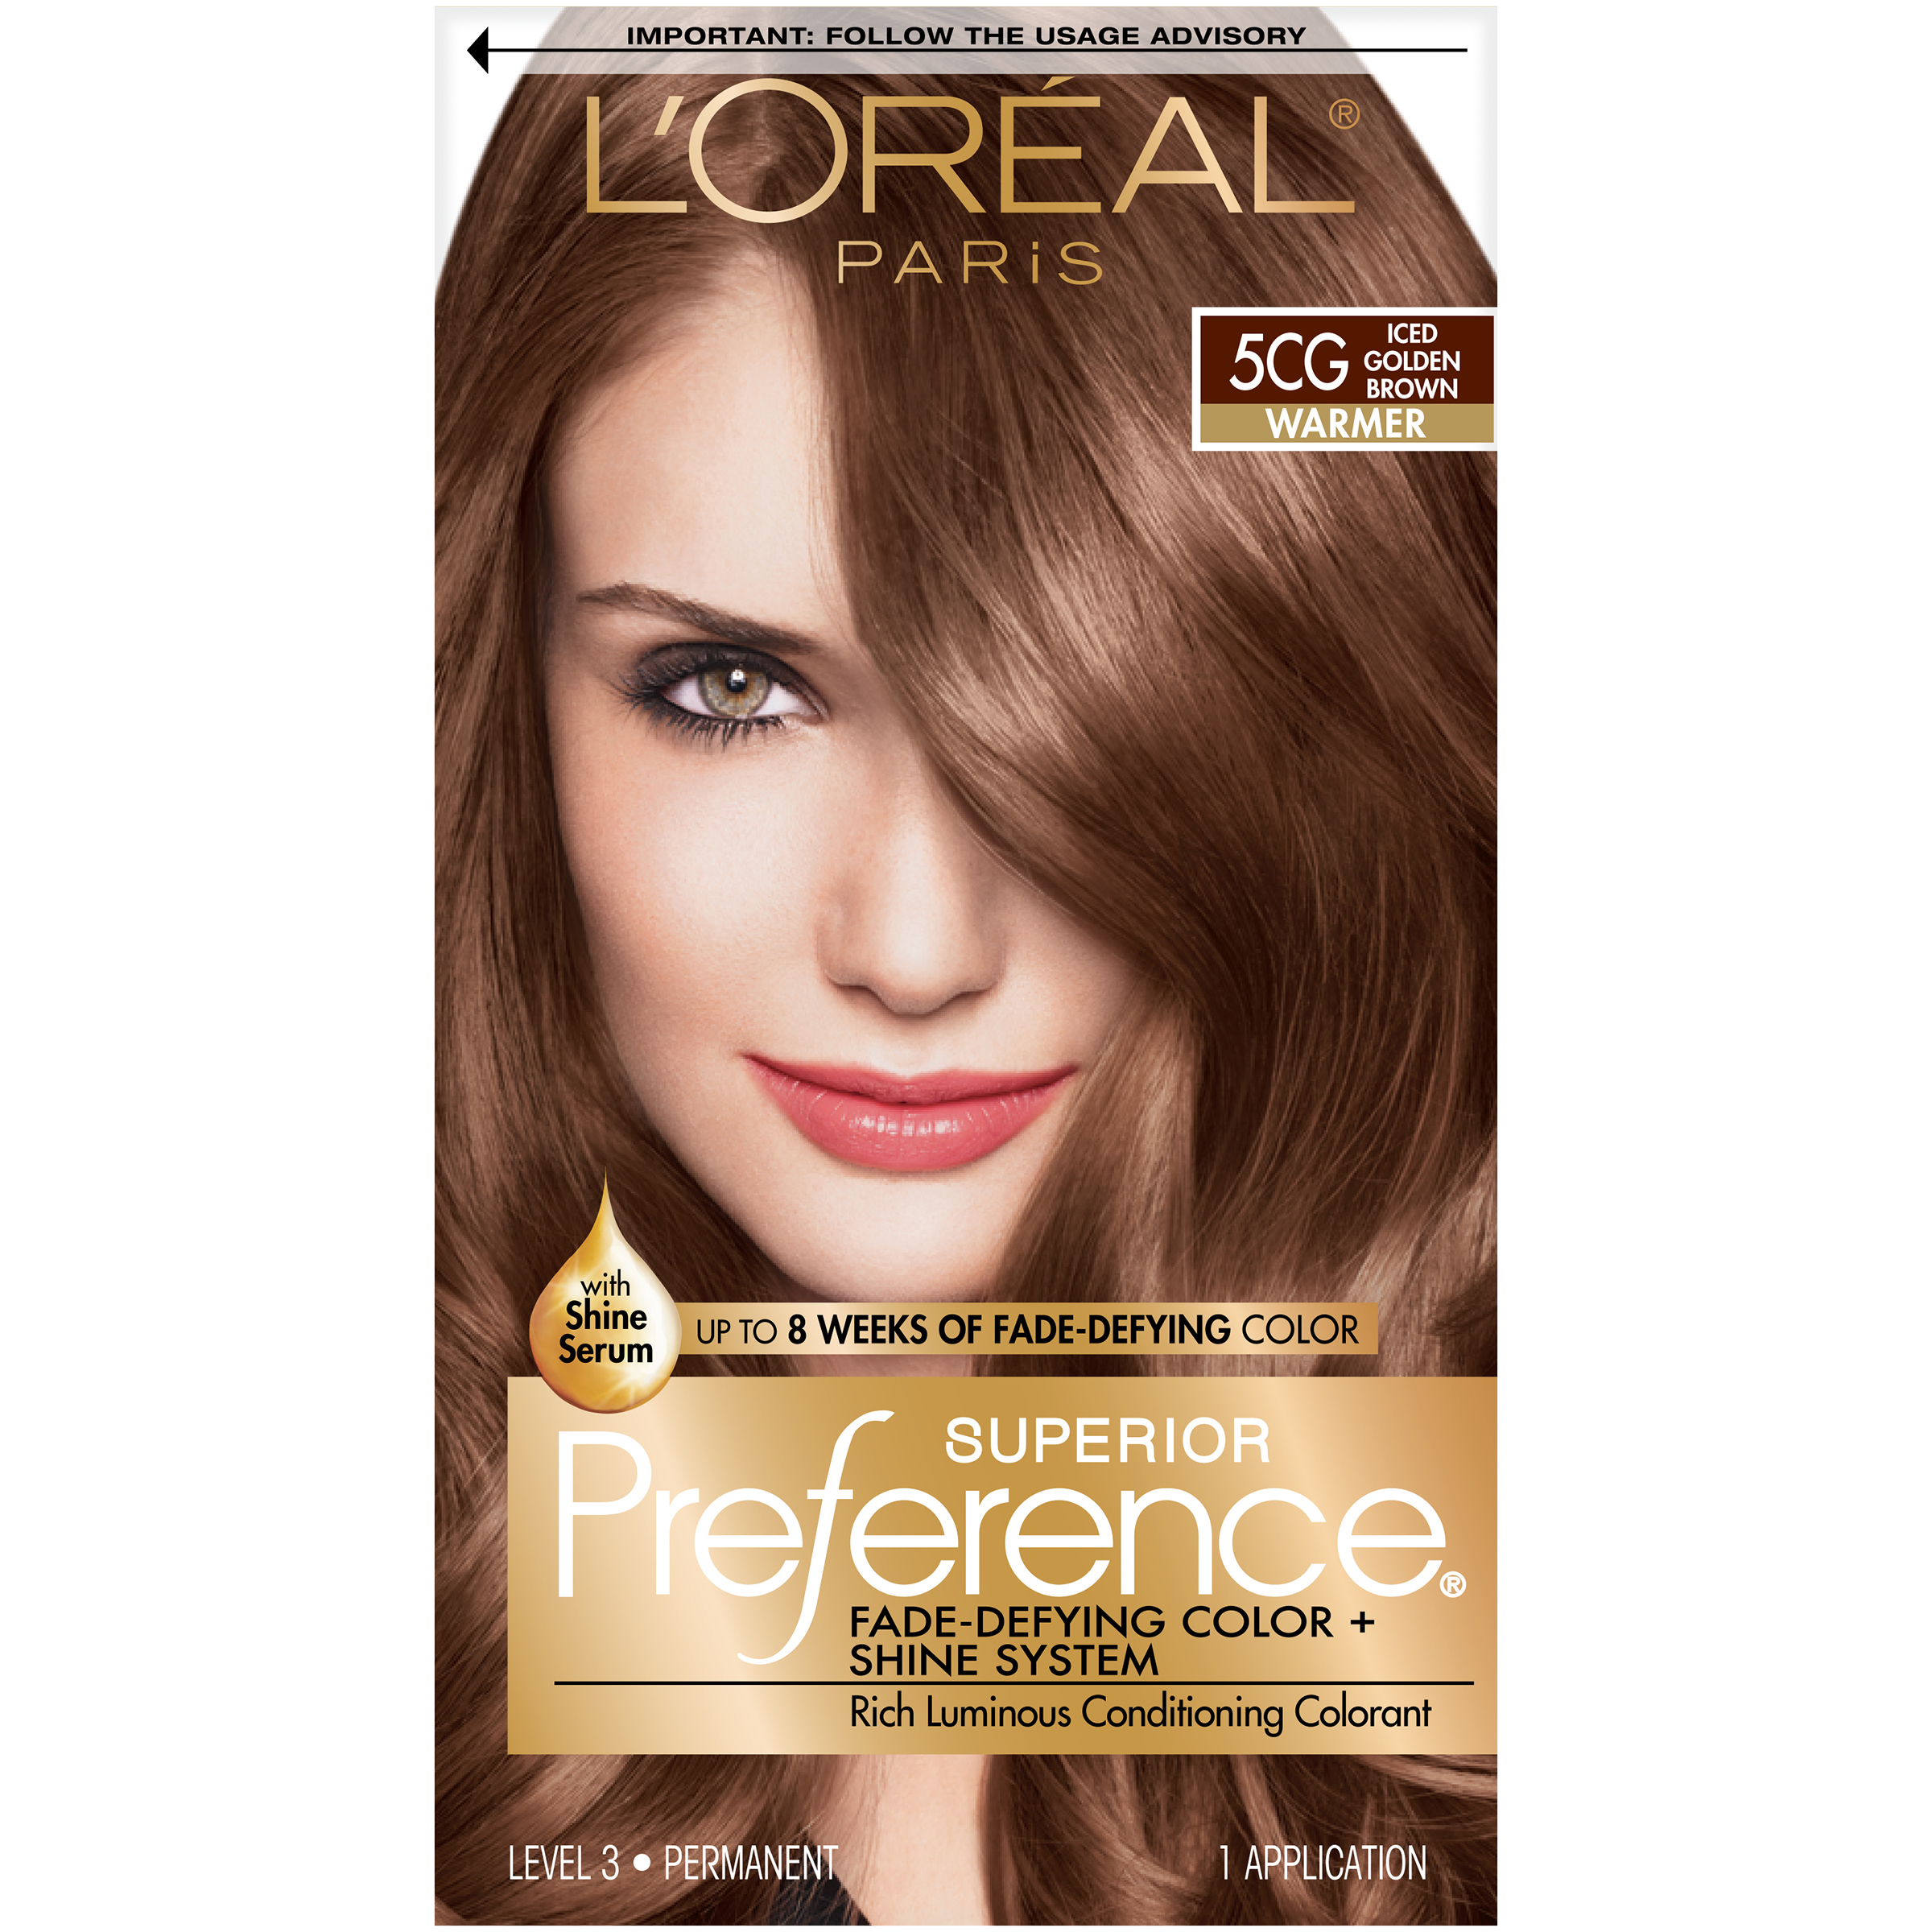 Loreal Paris Superior Preference Perm Hair Color 5cg Iced Golden